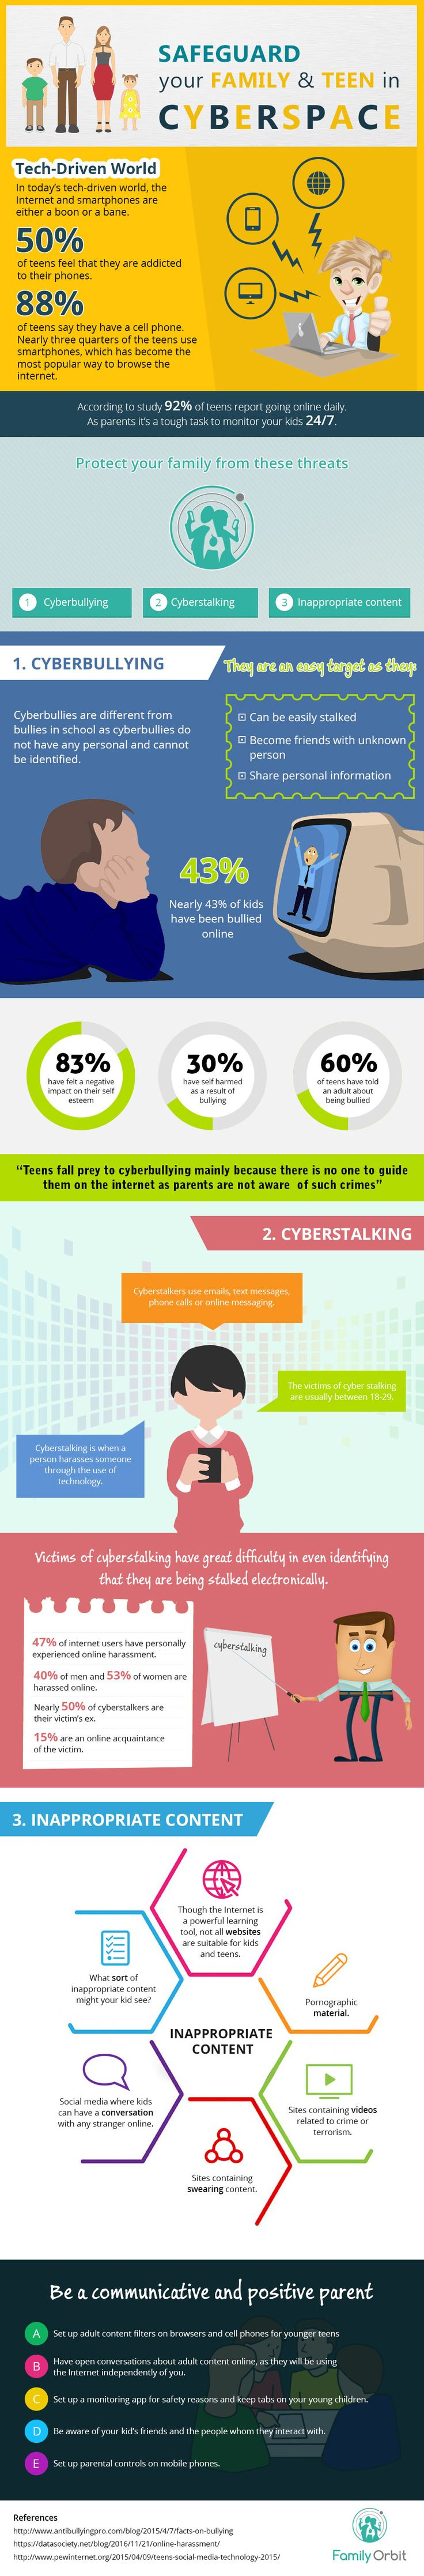 Keeping the children safe in the digital world is an upmost priority for the new-age parents. The smartphone addiction is a real thing and with the kids being glued to the screen they are easy to get exposed to the harmful side of the Internet say bullying, sexting, pornography or identity theft. This Infographic from Family Orbit will list some real dangers the child may face and tips for parents to tackle these challenges.